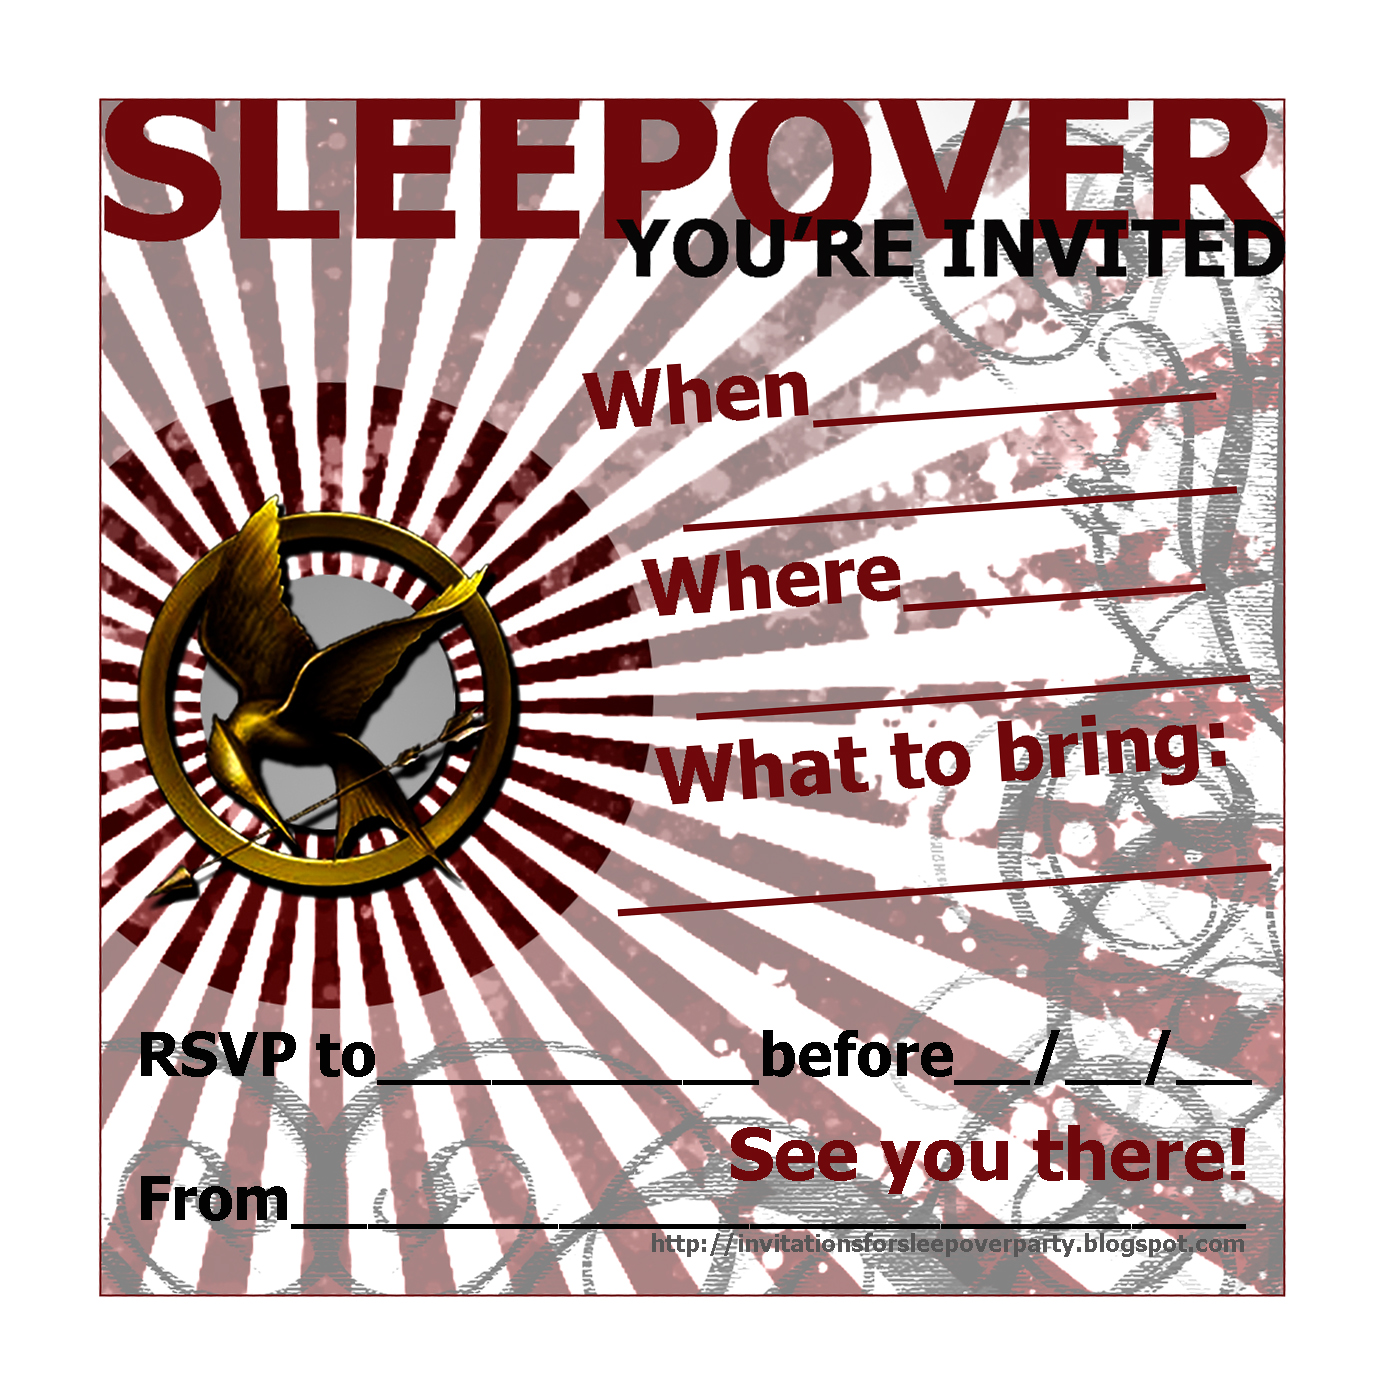 invitations for sleepover party the hunger games printable slumber party invites